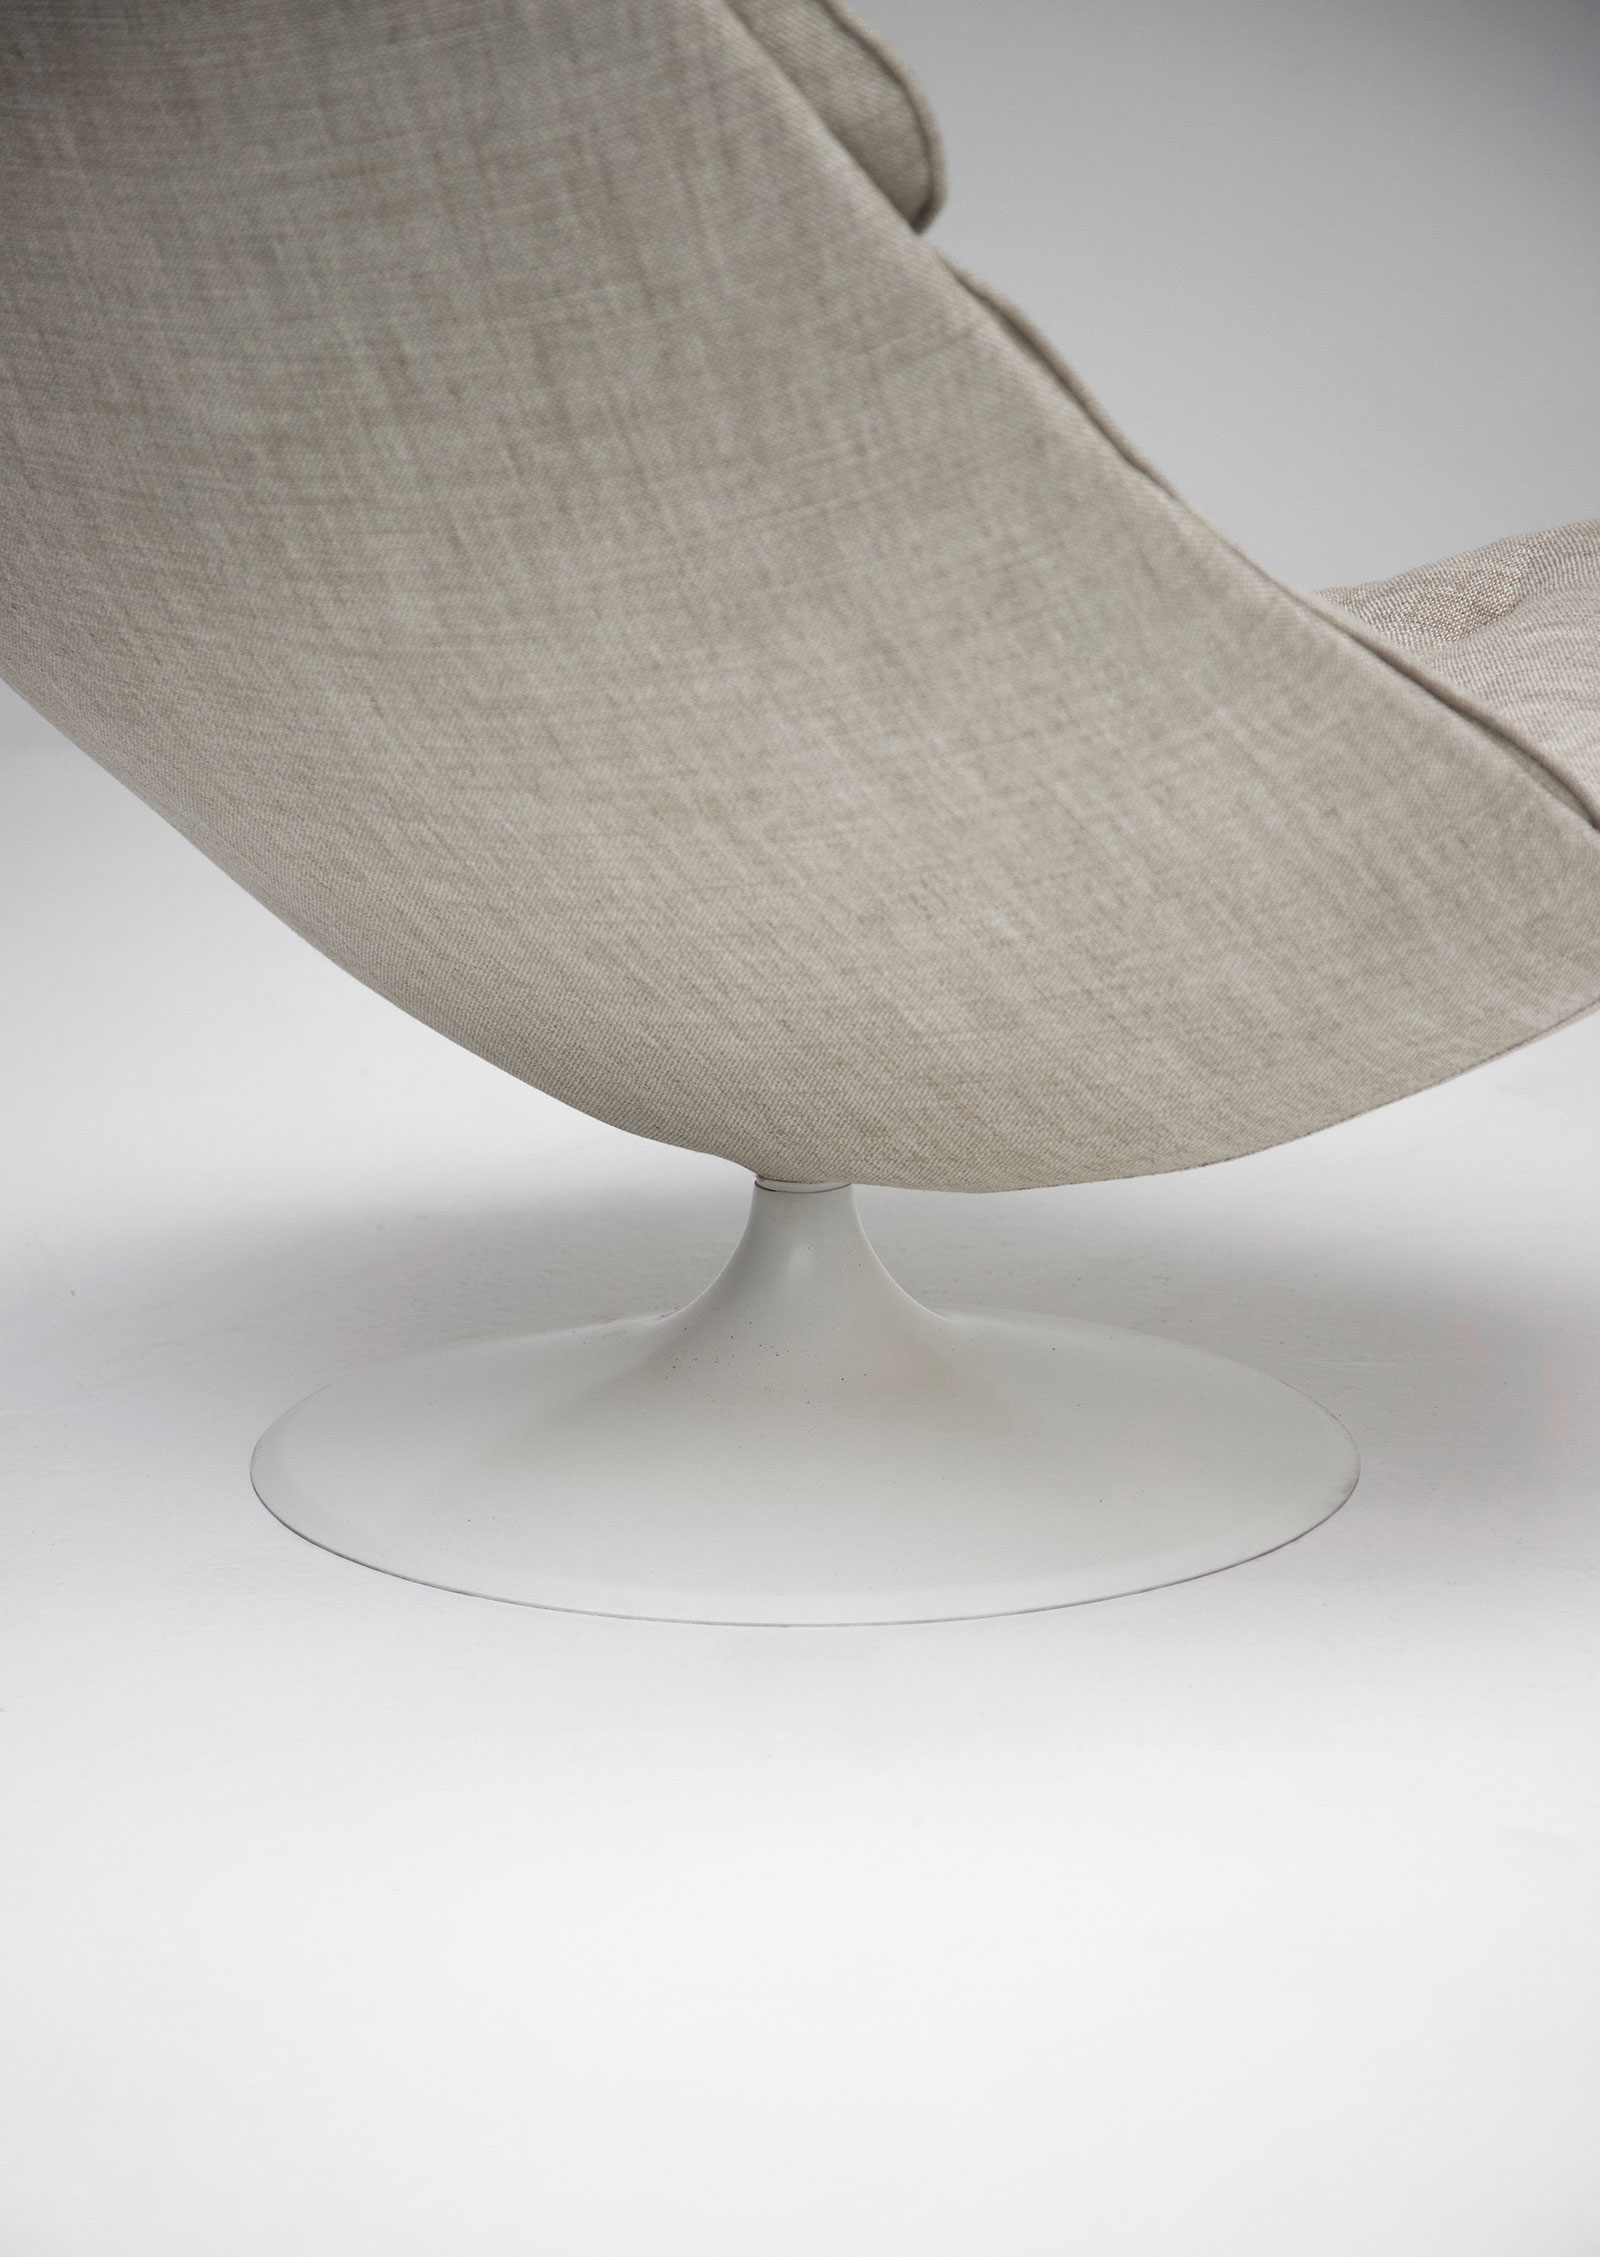 artifort f588 fauteuil by geoffrey harcourtimage 6